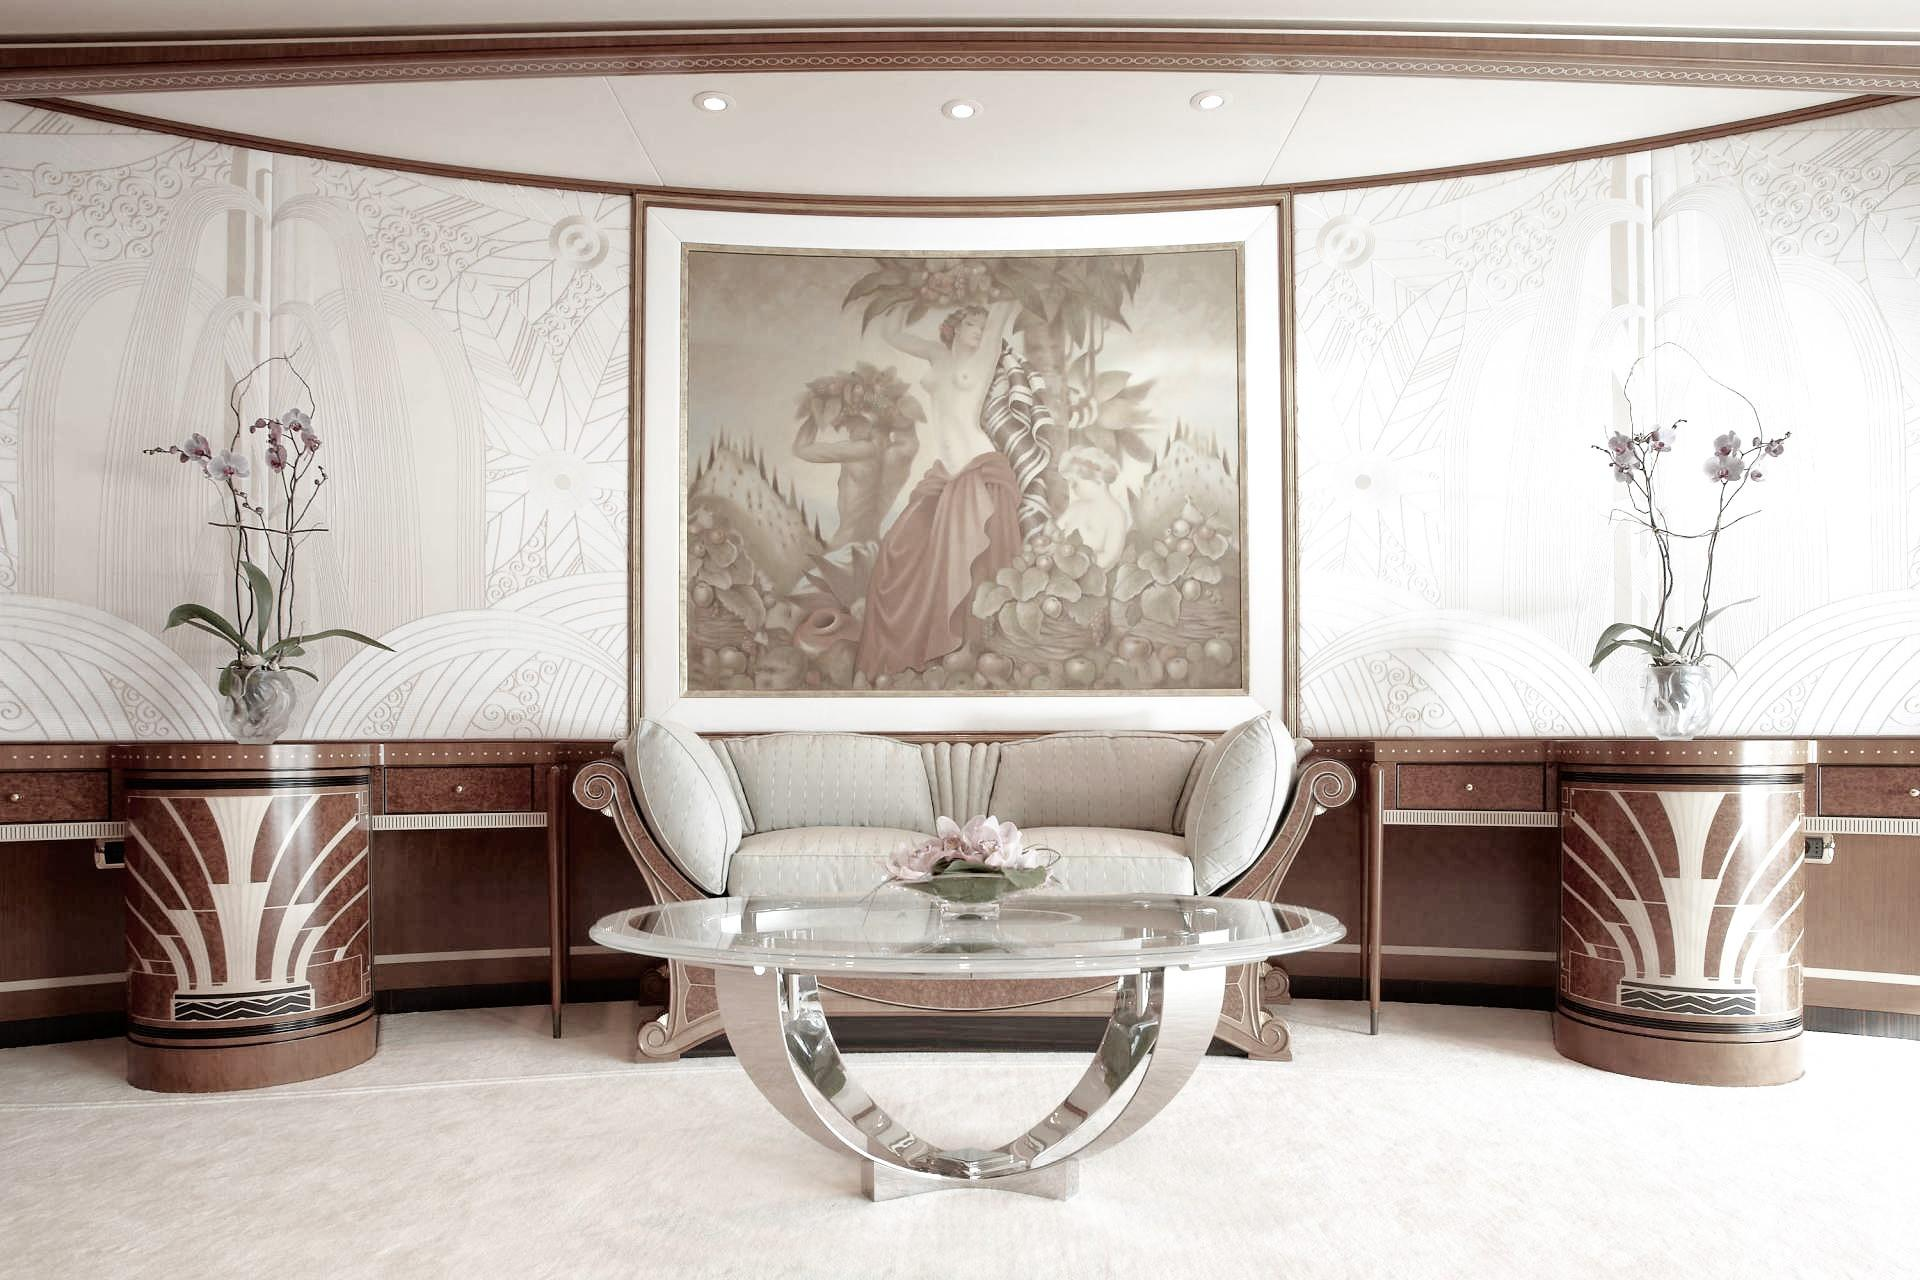 Lady+Christine_Interior_LC_Owners_Stateroom_02__1920 copy